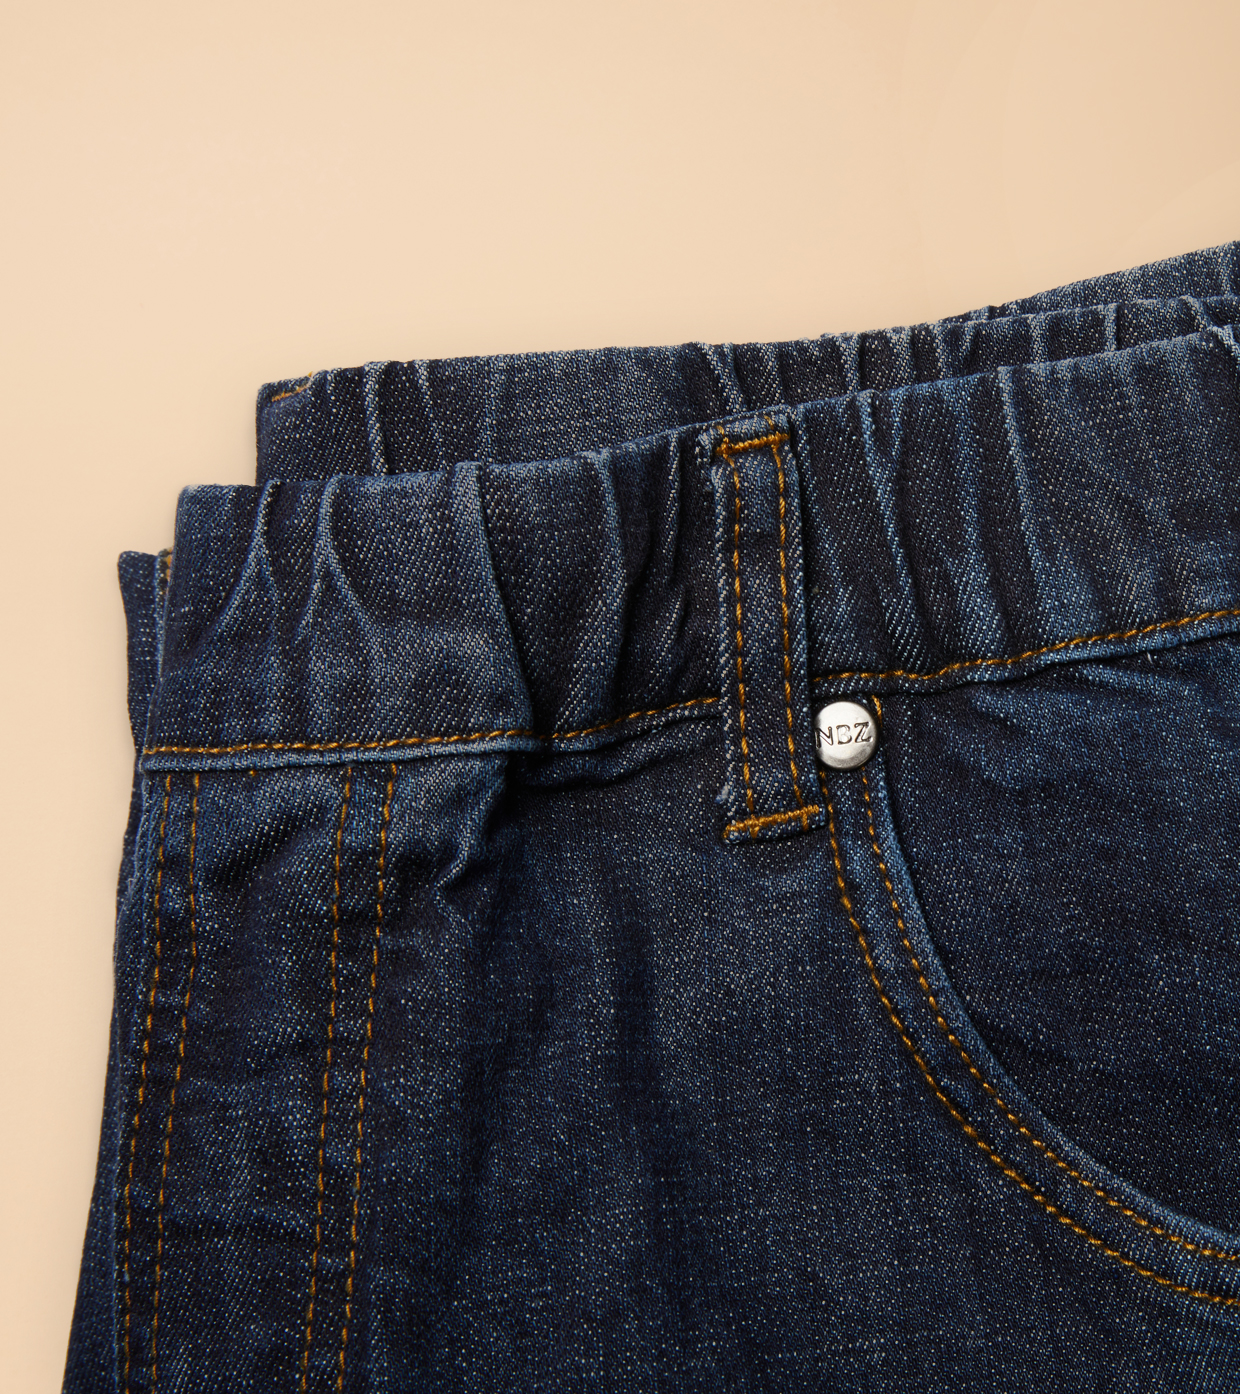 Closeup of NBZ brand jeans